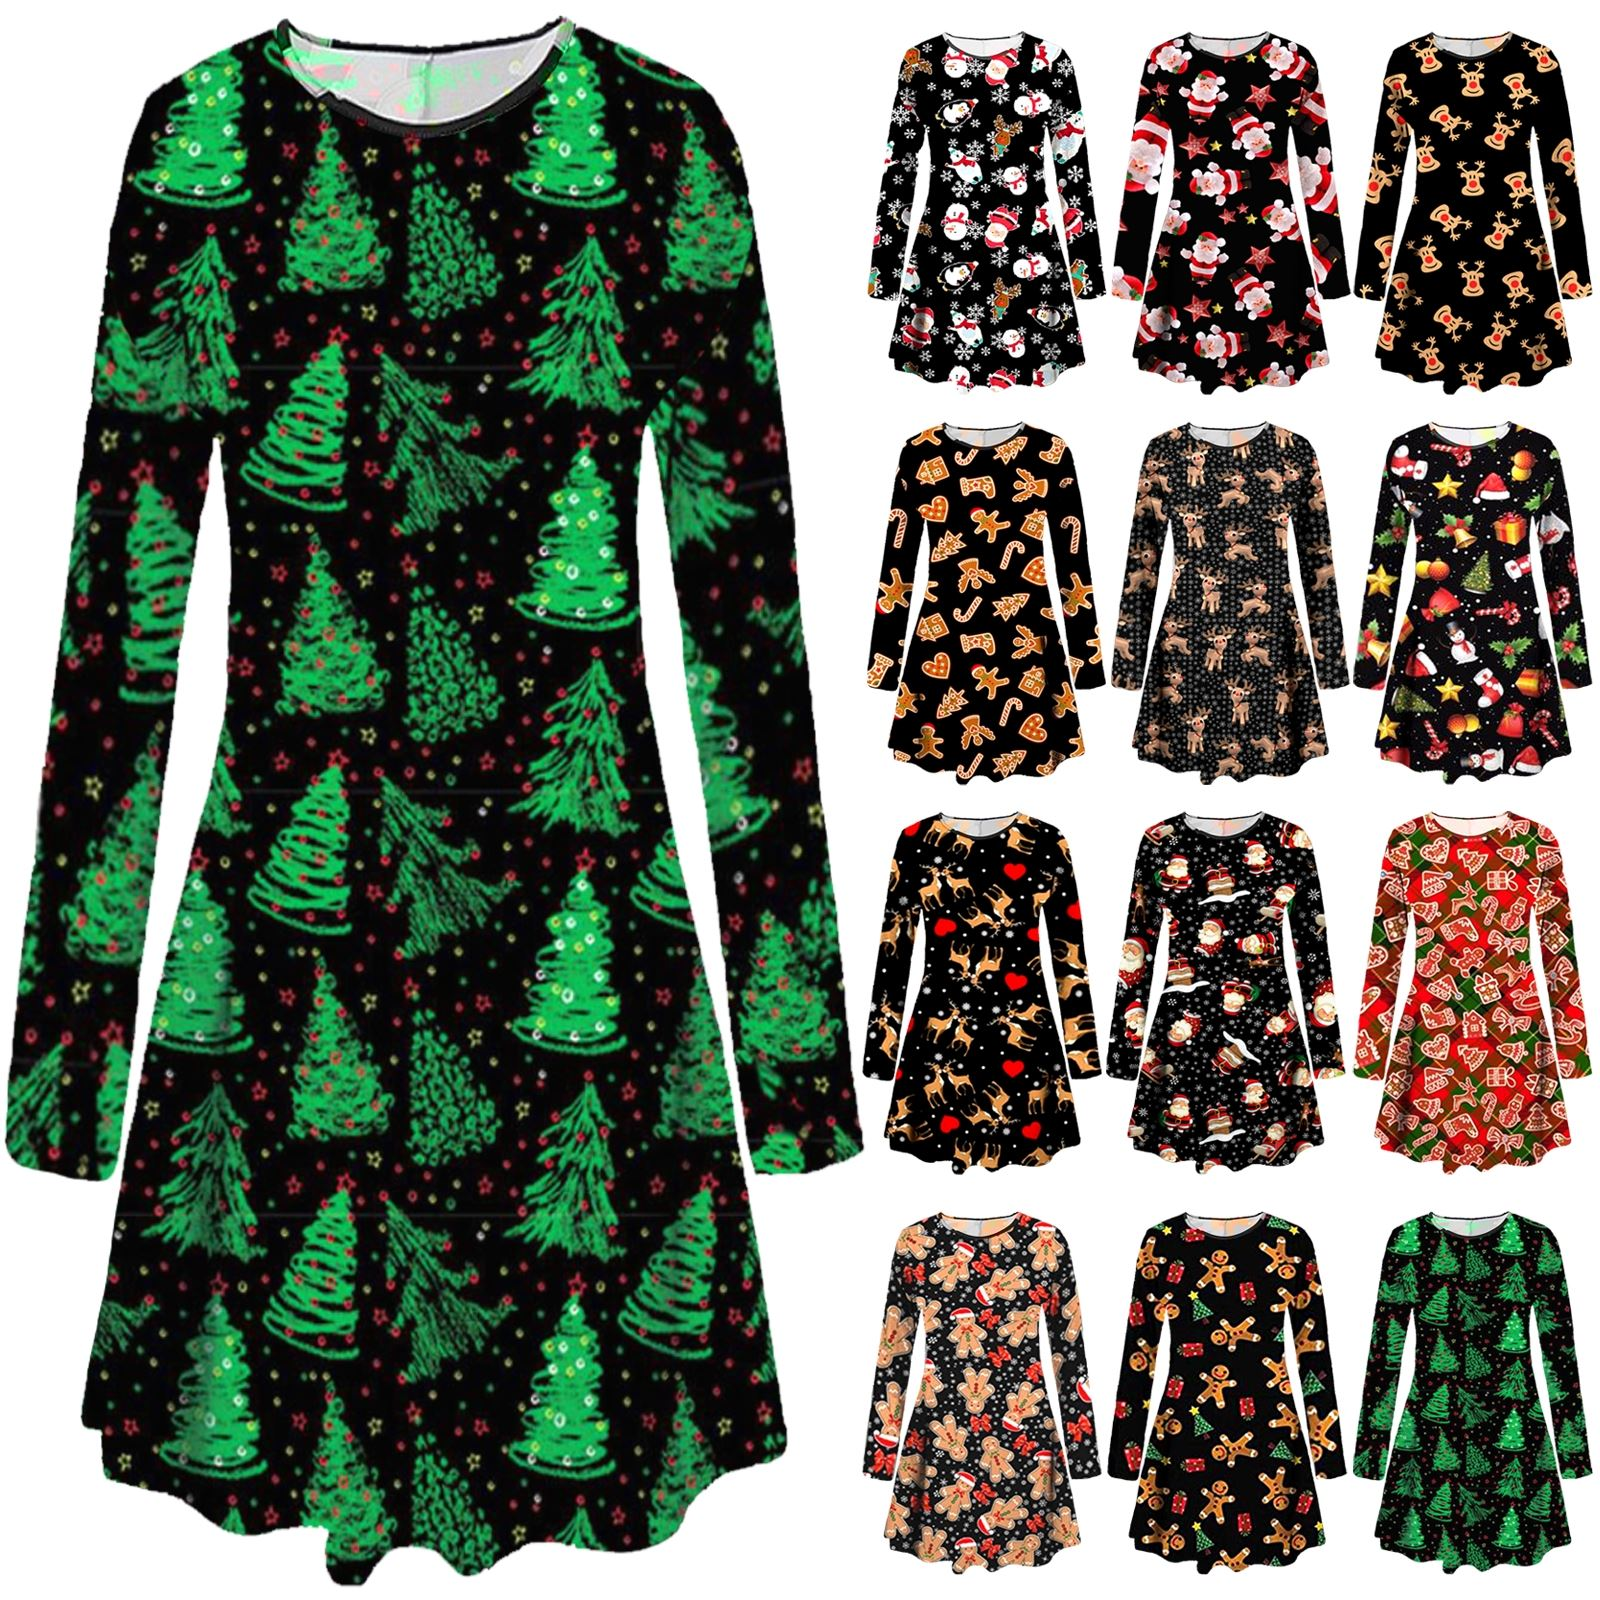 Christmas Swing Dress Uk.Details About Uk Womens Christmas Gingerbread Candy Xmas Gift Party Swing Dress Top Plus Size